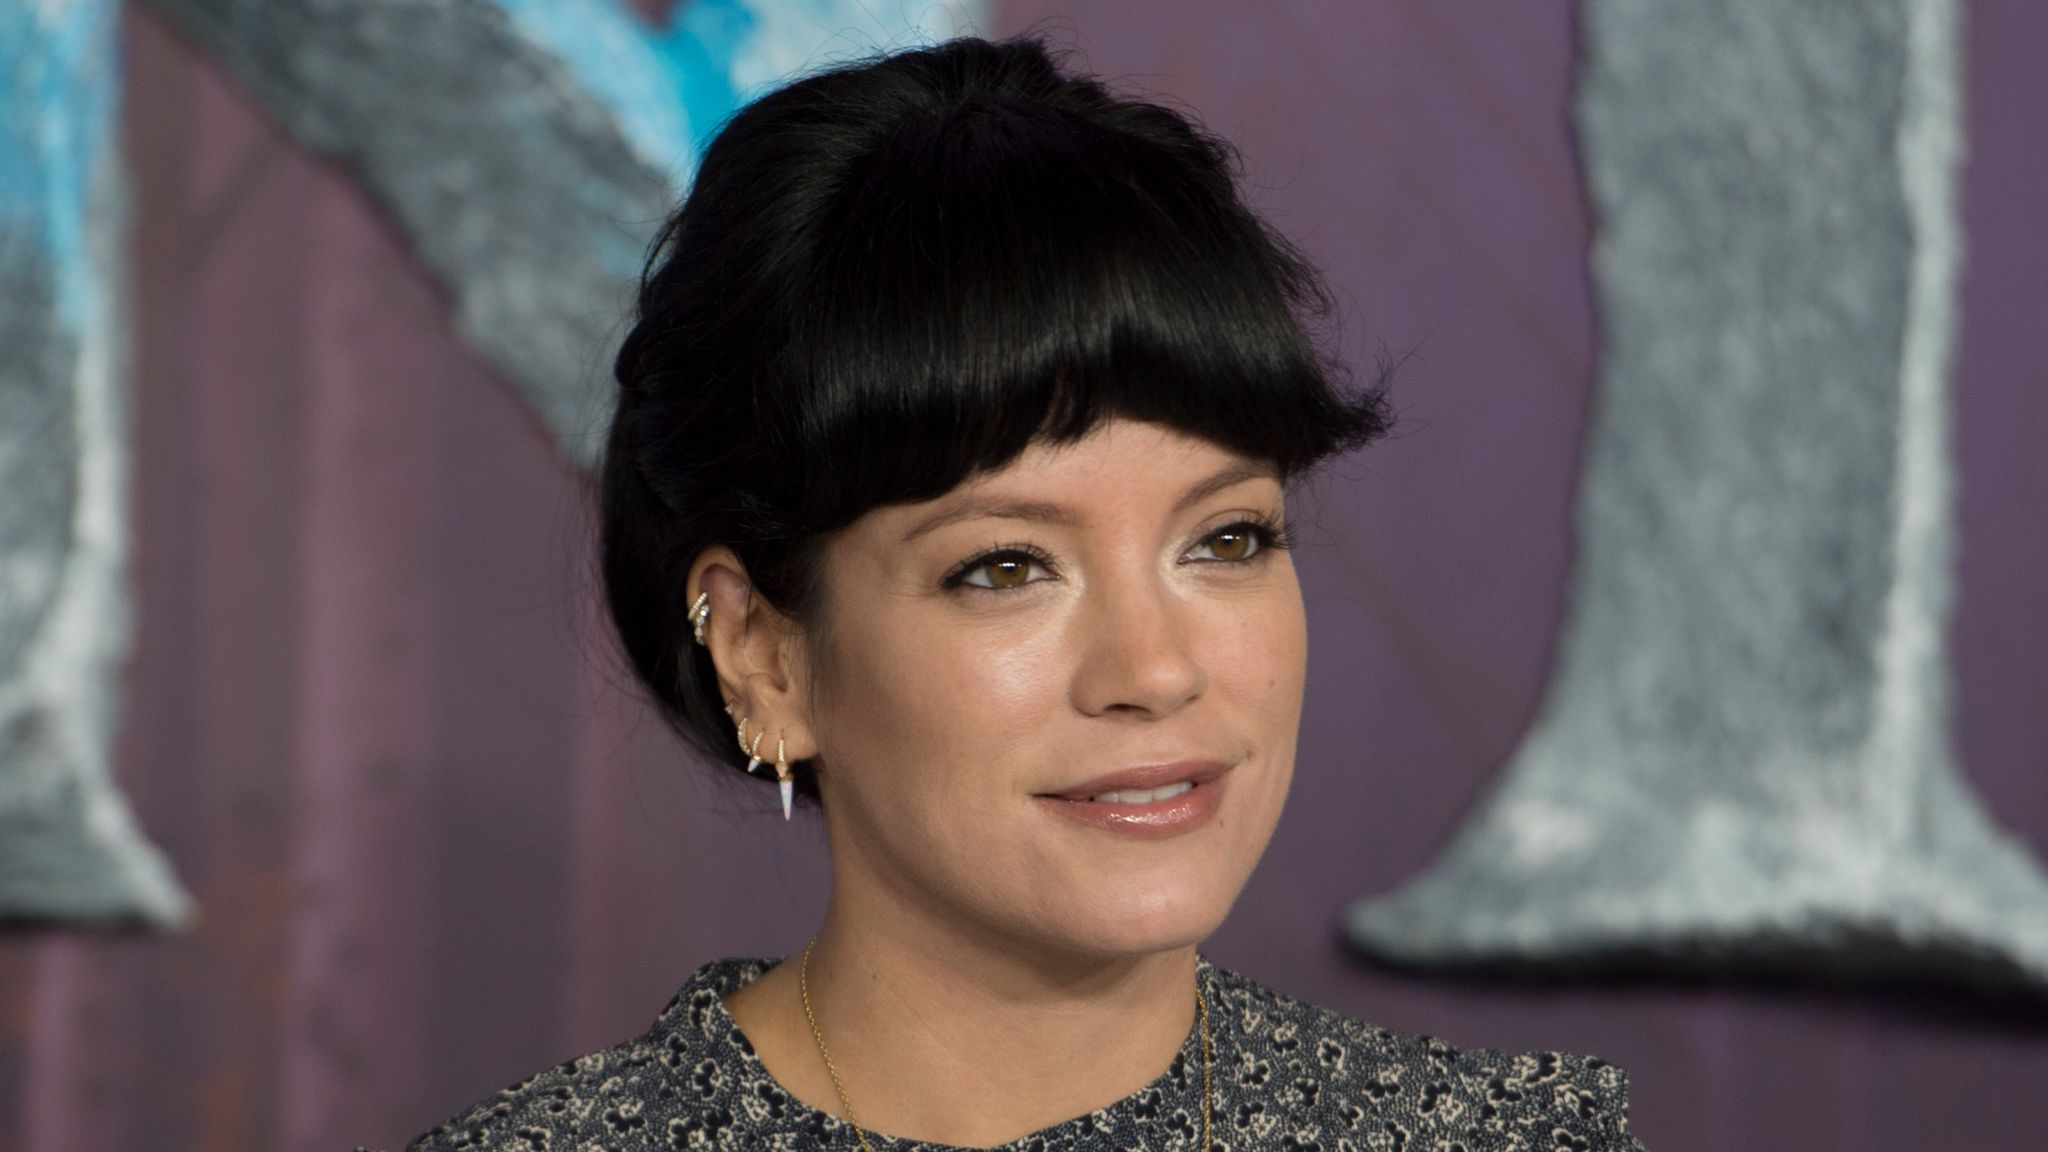 Lily Allen quits Twitter - saying site 'gives a voice to the far right'